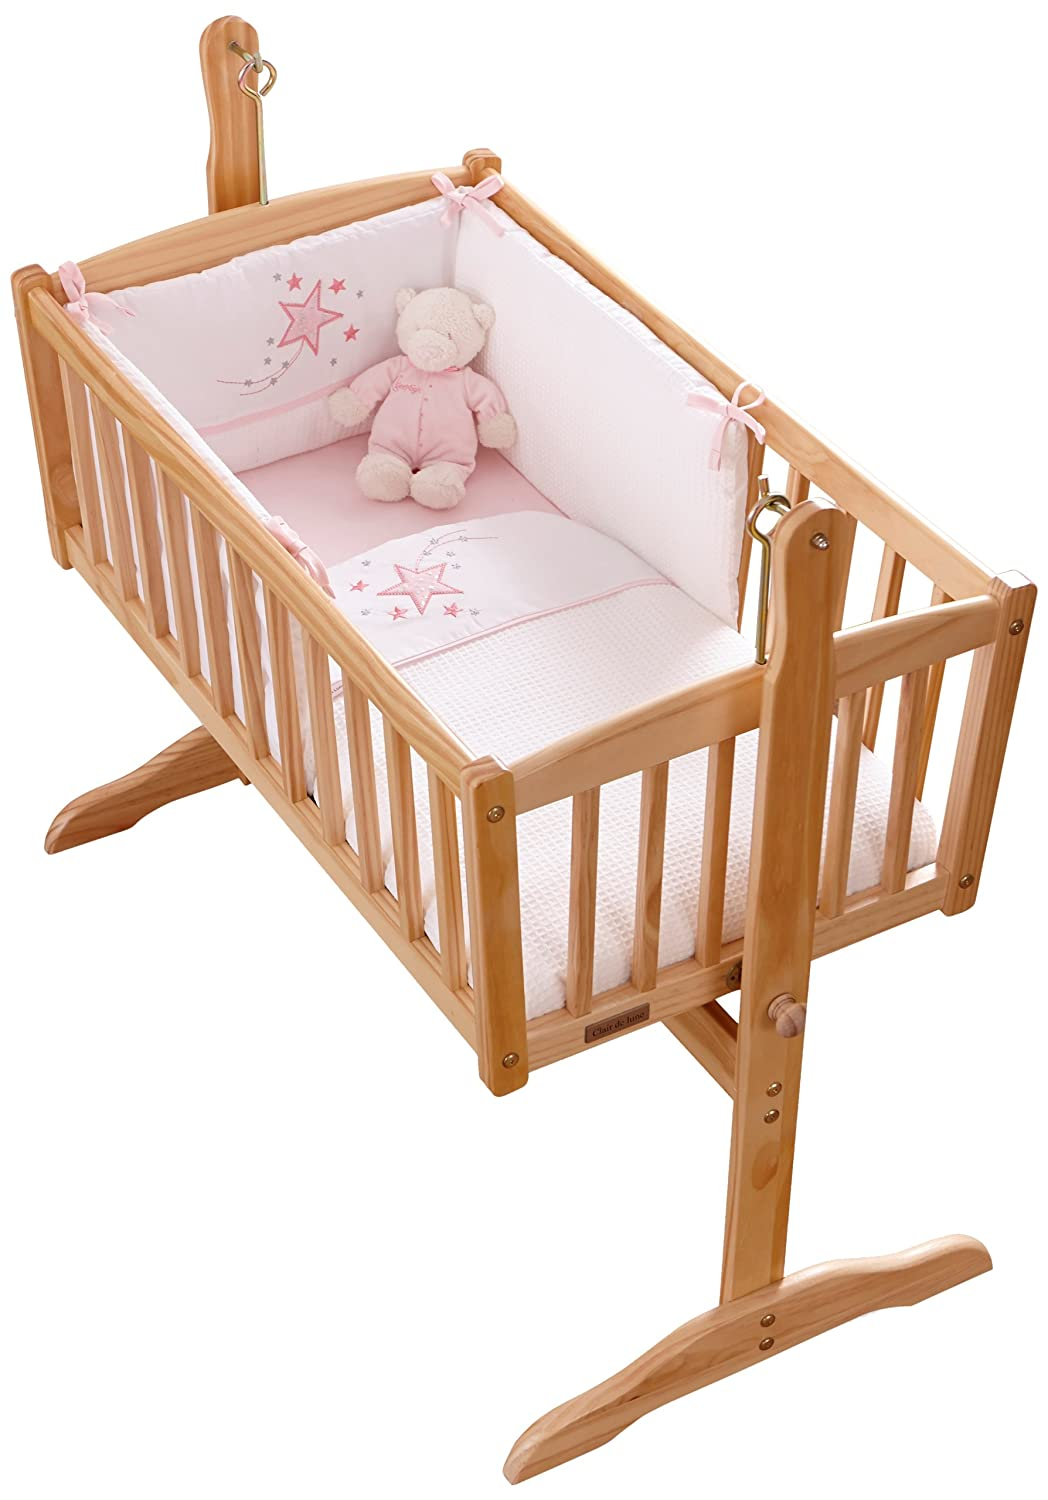 Clair de Lune Stardust Rocking Crib/Cradle Quilt and Bumper Set (Pink) BabyCenter CL4816P